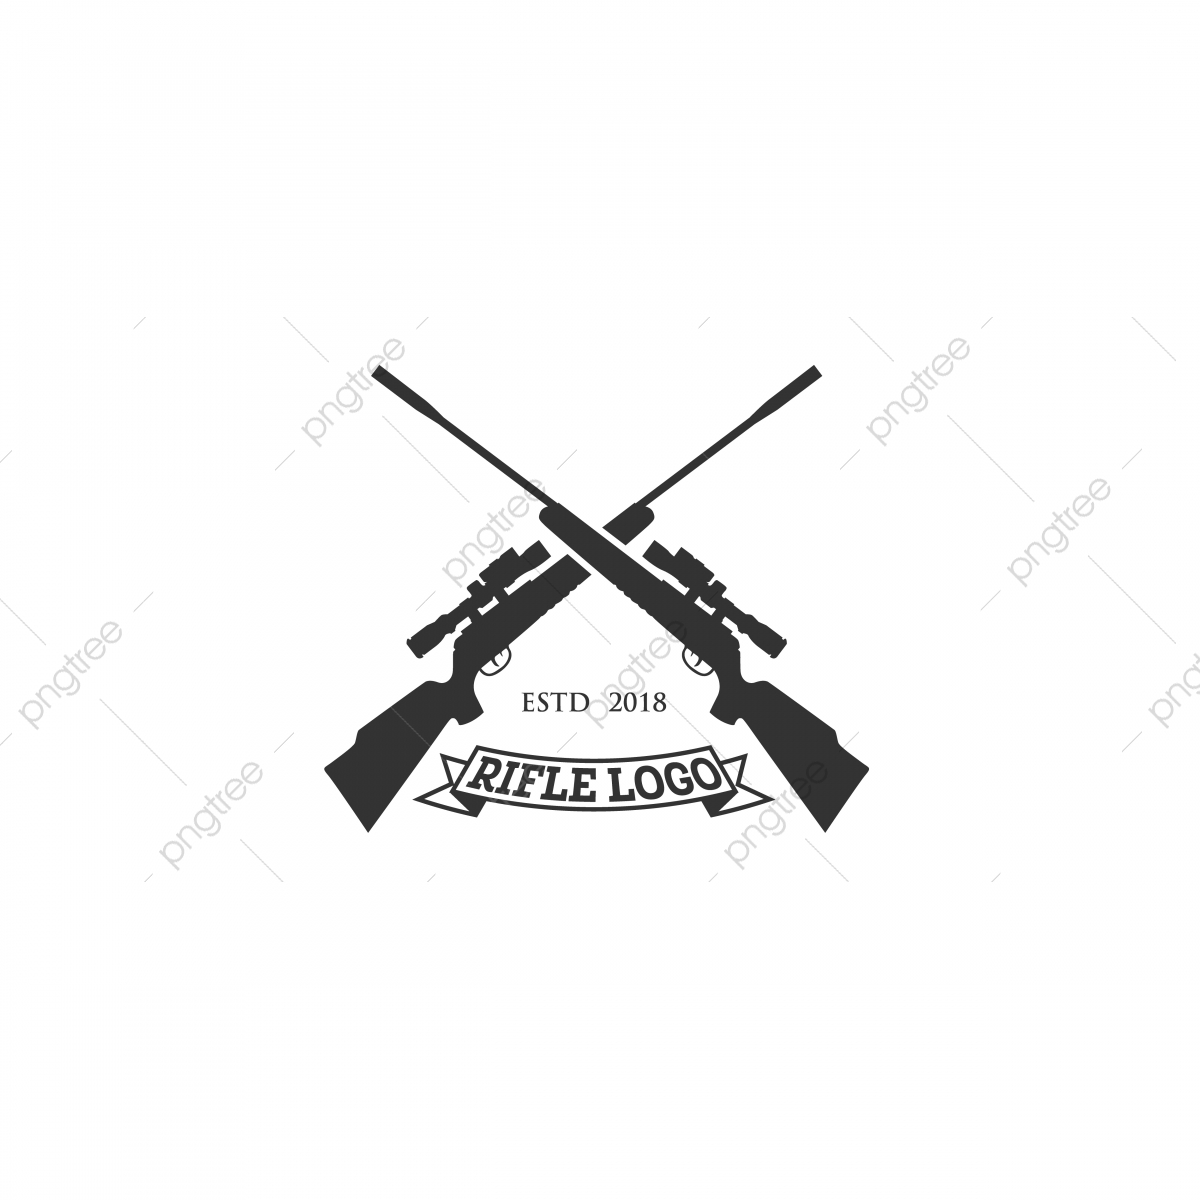 Rifle Club Logo Designs Logo Icons Club Icons Logo Png And Vector With Transparent Background For Free Download